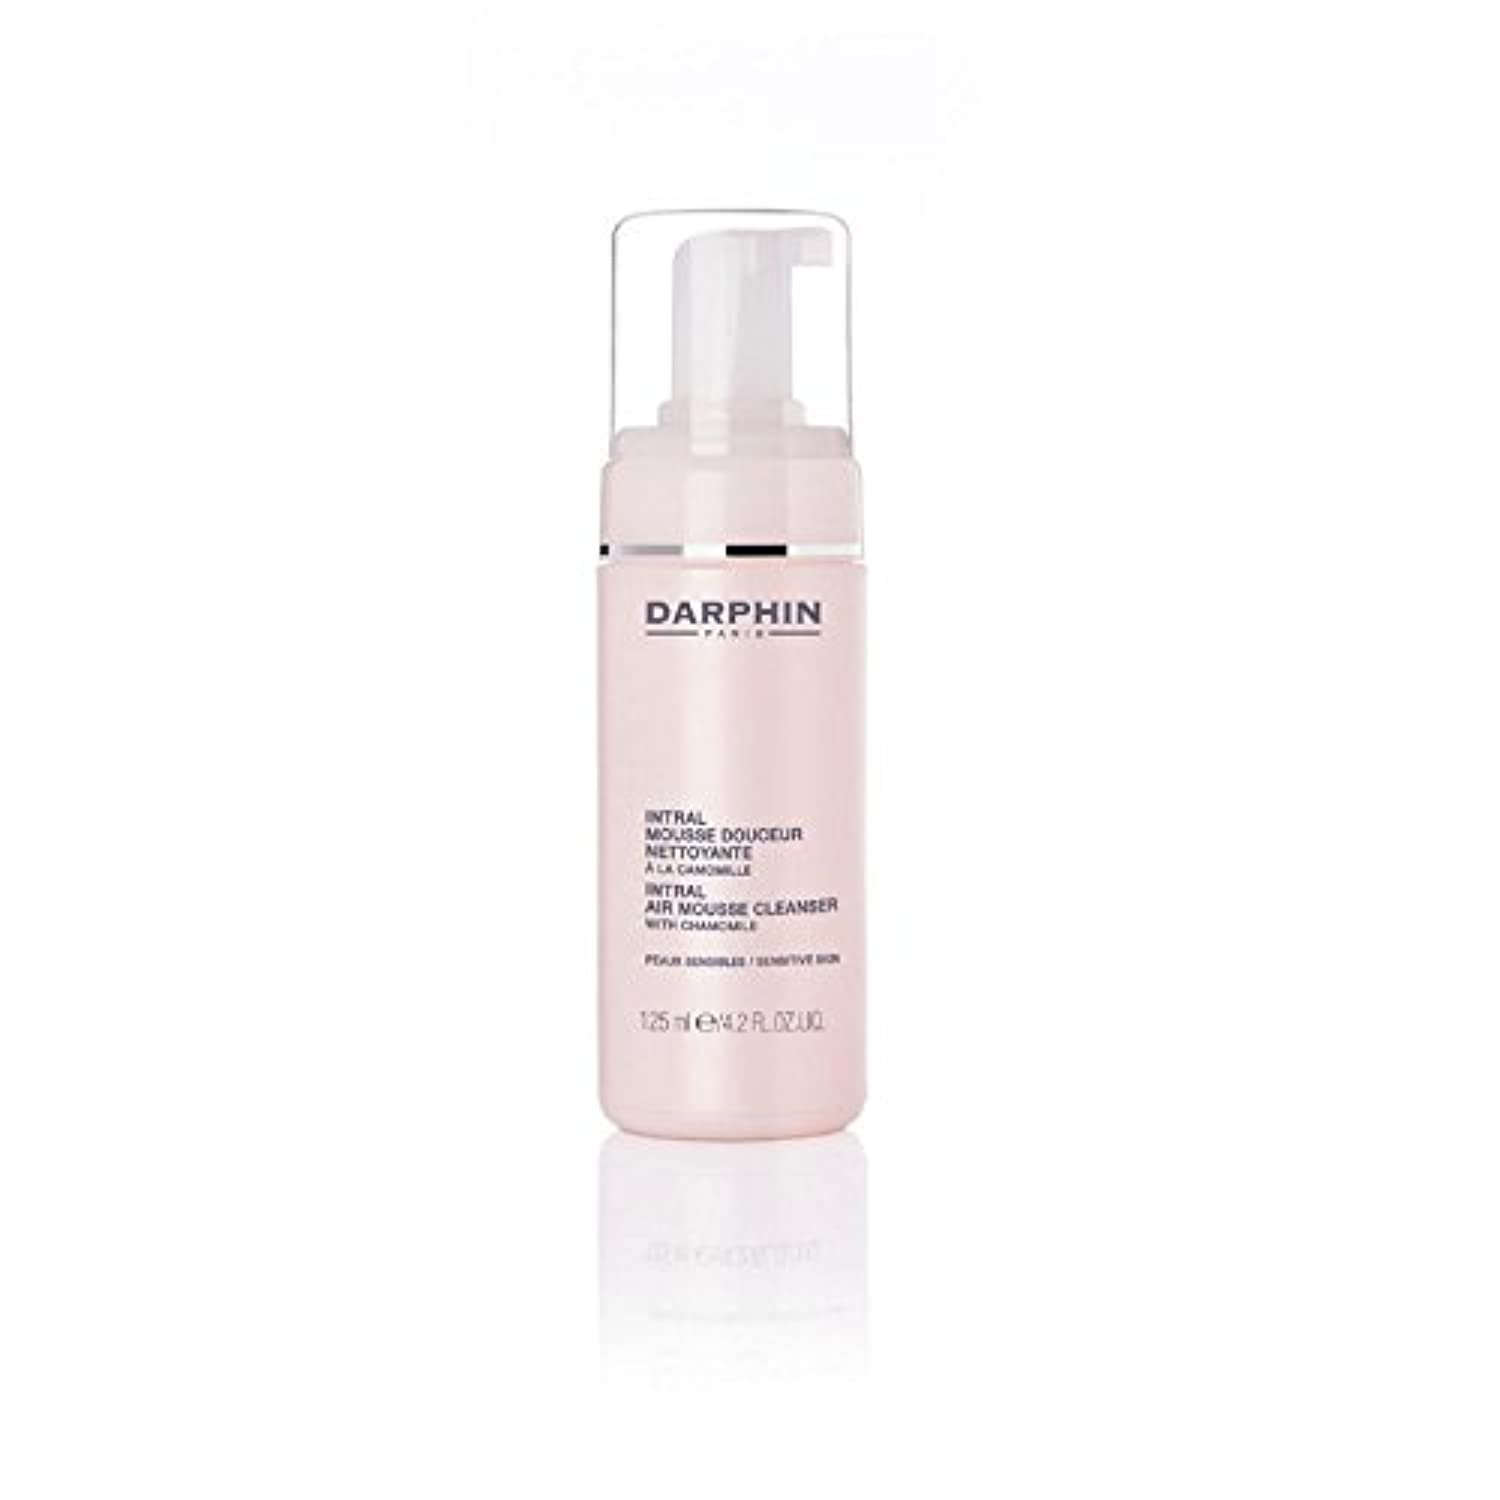 Darphin Intral Cleanser 125ml (Pack of 6) - ダルファンクレンザー125ミリリットル x6 [並行輸入品]